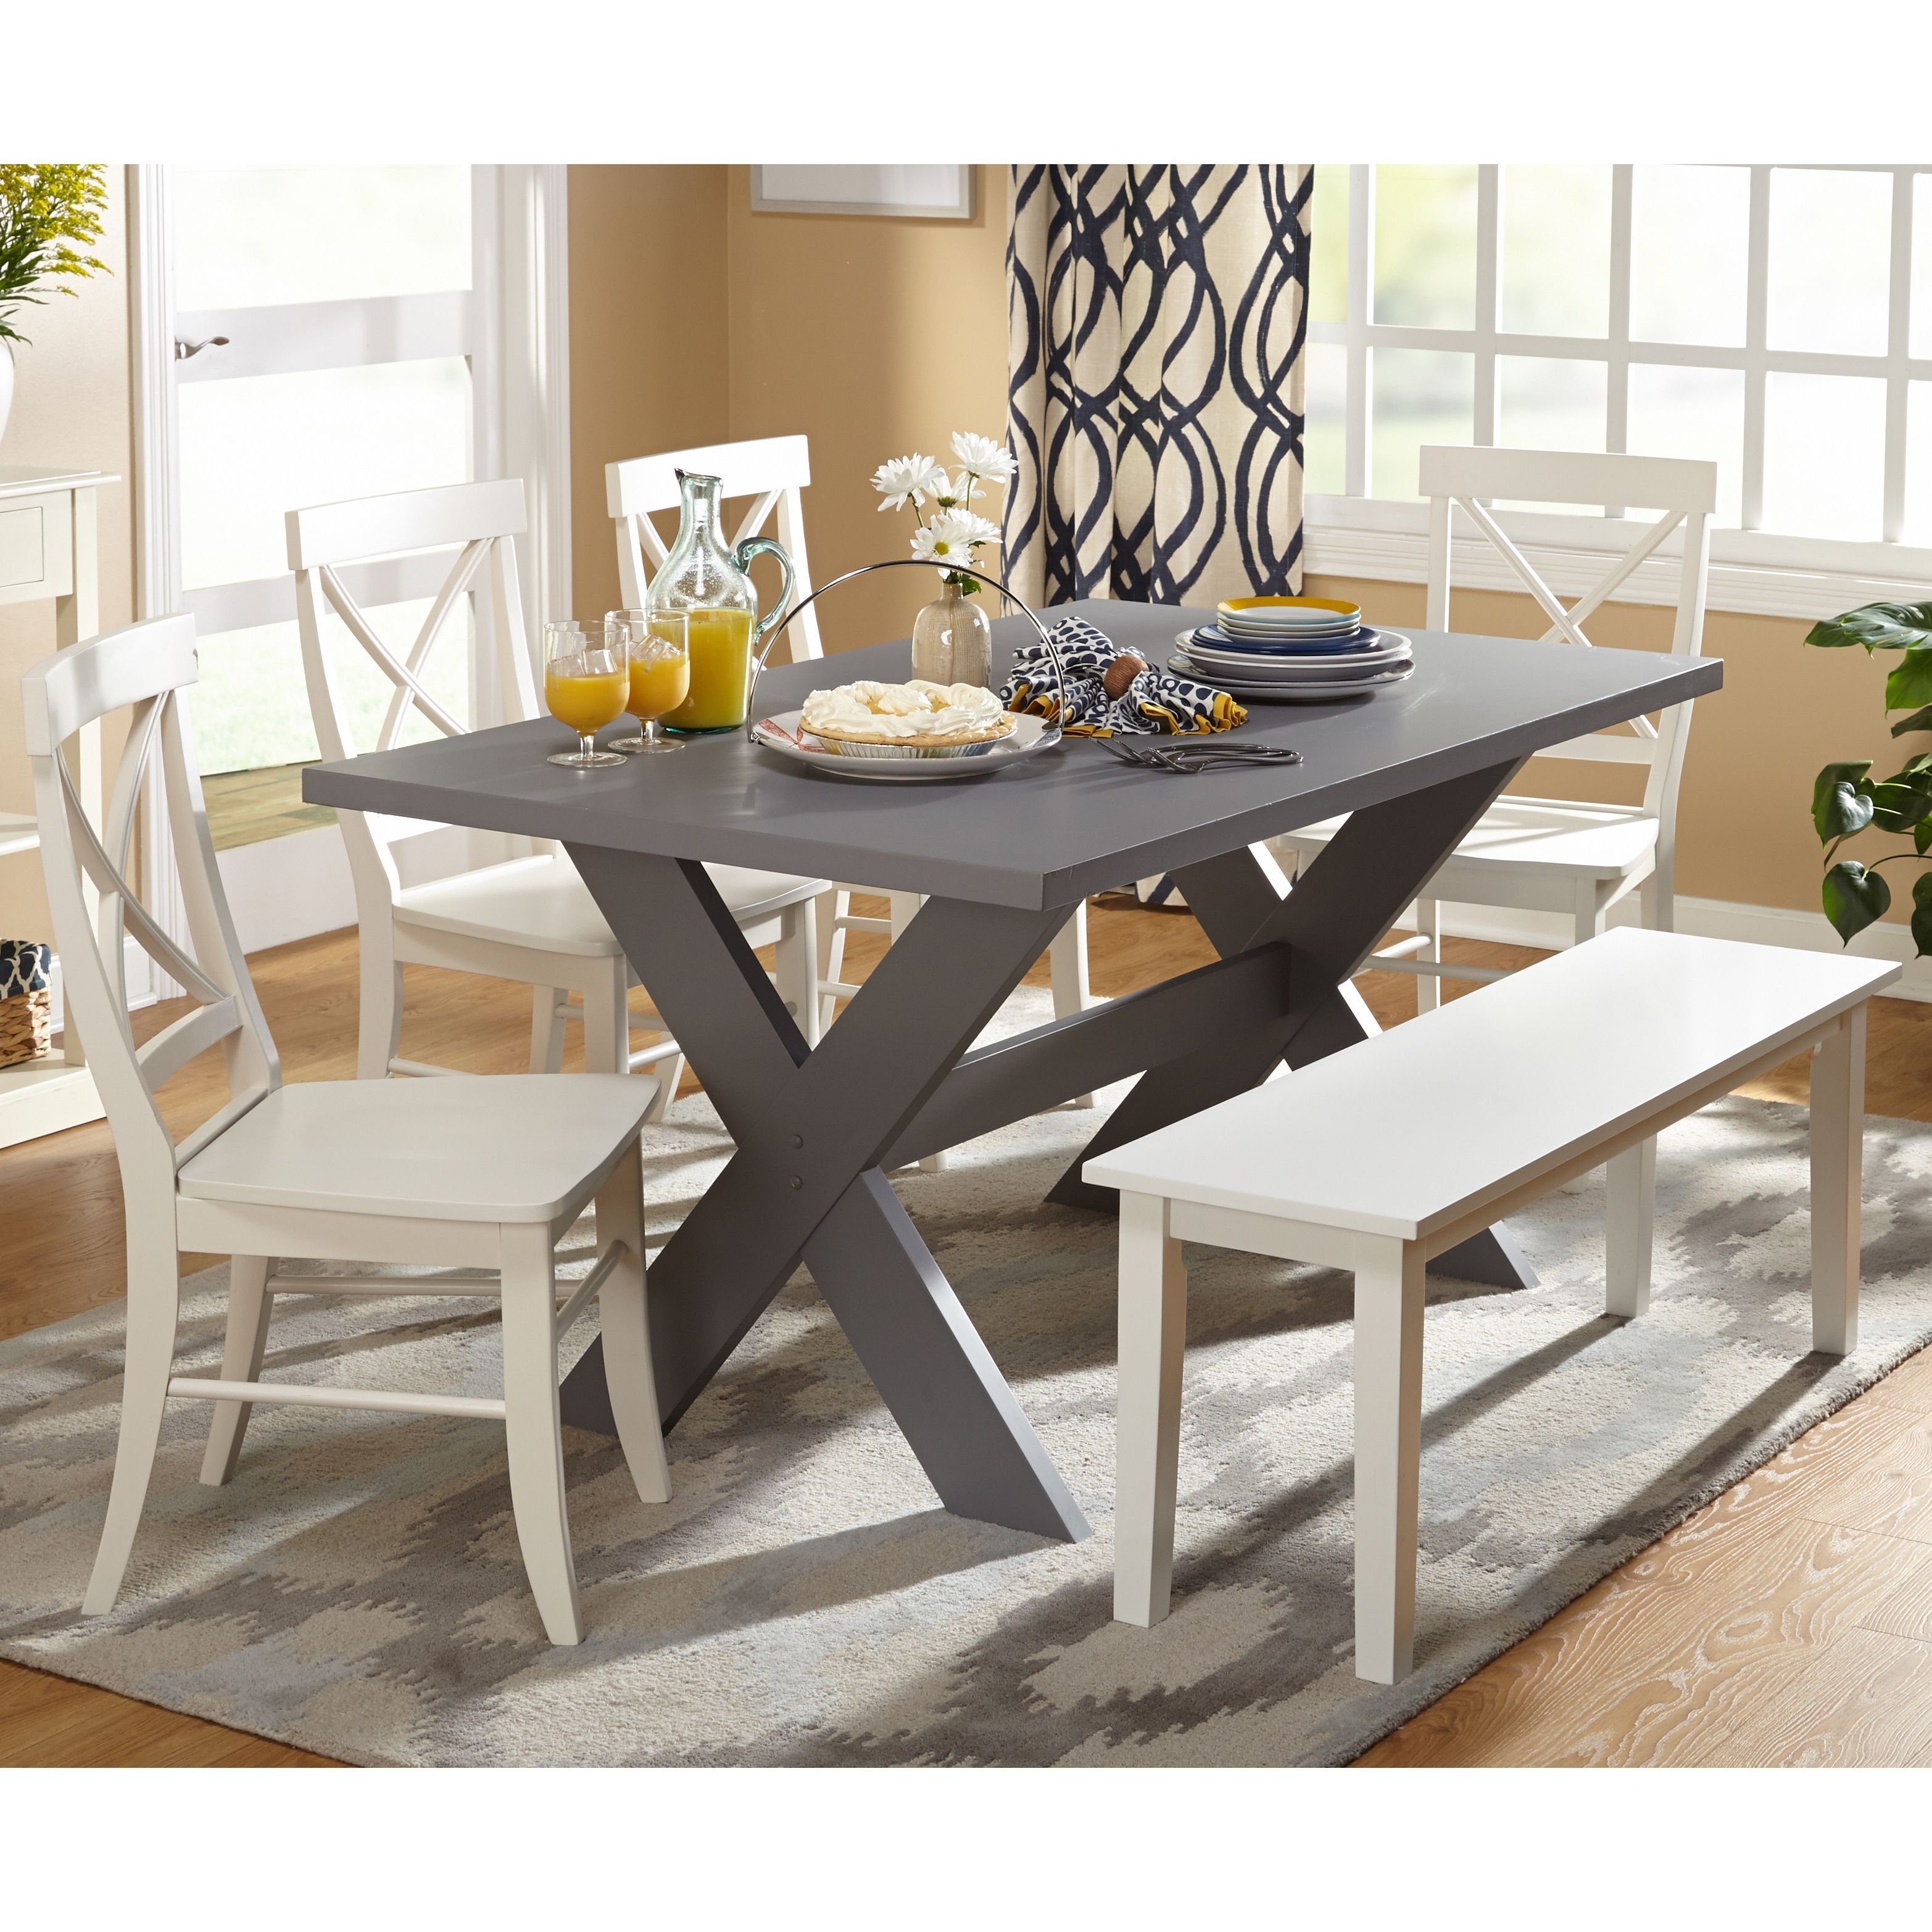 Outstanding Transitional Dining Room Suitable For Any Home: Bedding, Furniture, Electronics, Jewelry